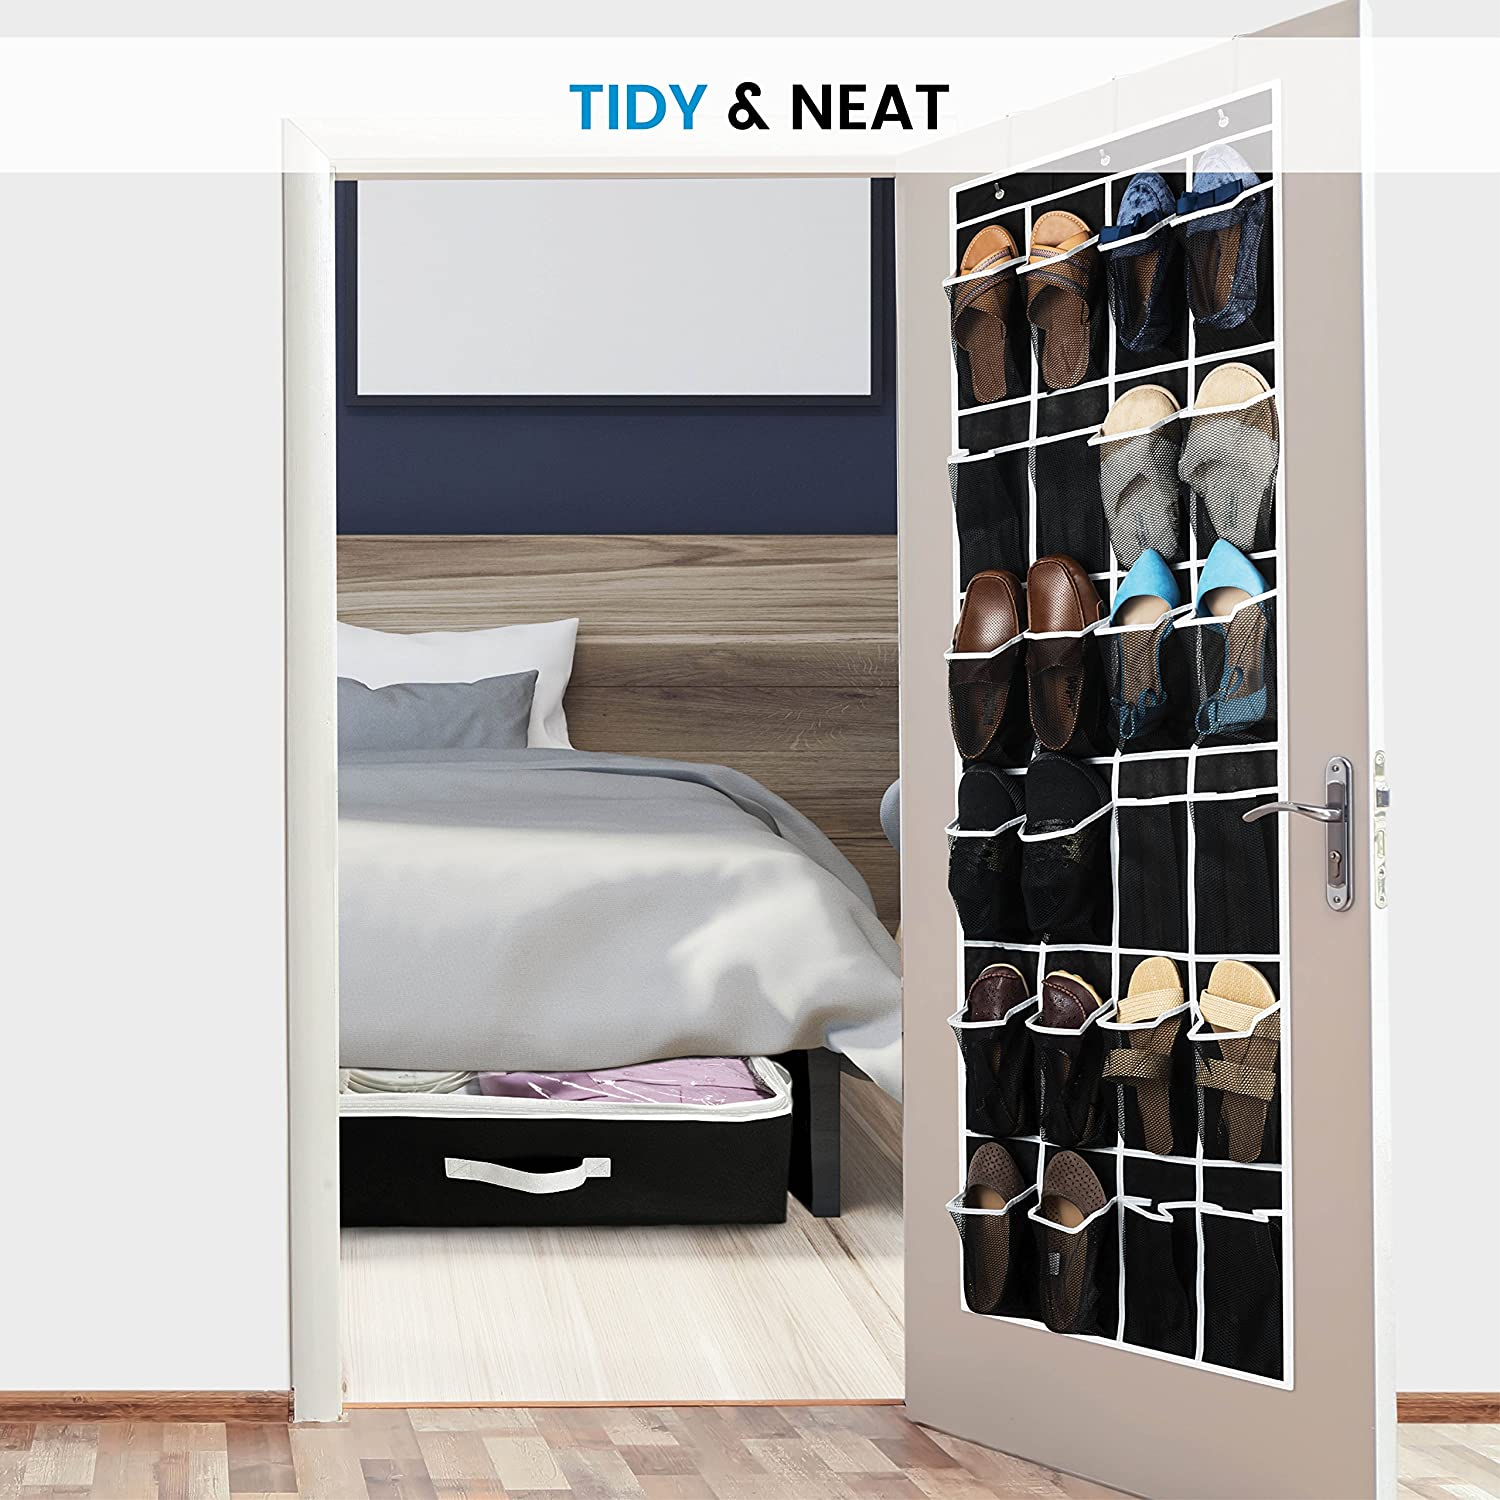 Hanging Shoe Holder for Maximizing Shoe Storage ZOBER Over The Door Shoe Organizer Accessories Toiletries 64in x 18in 24 Breathable Pockets Laundry Items